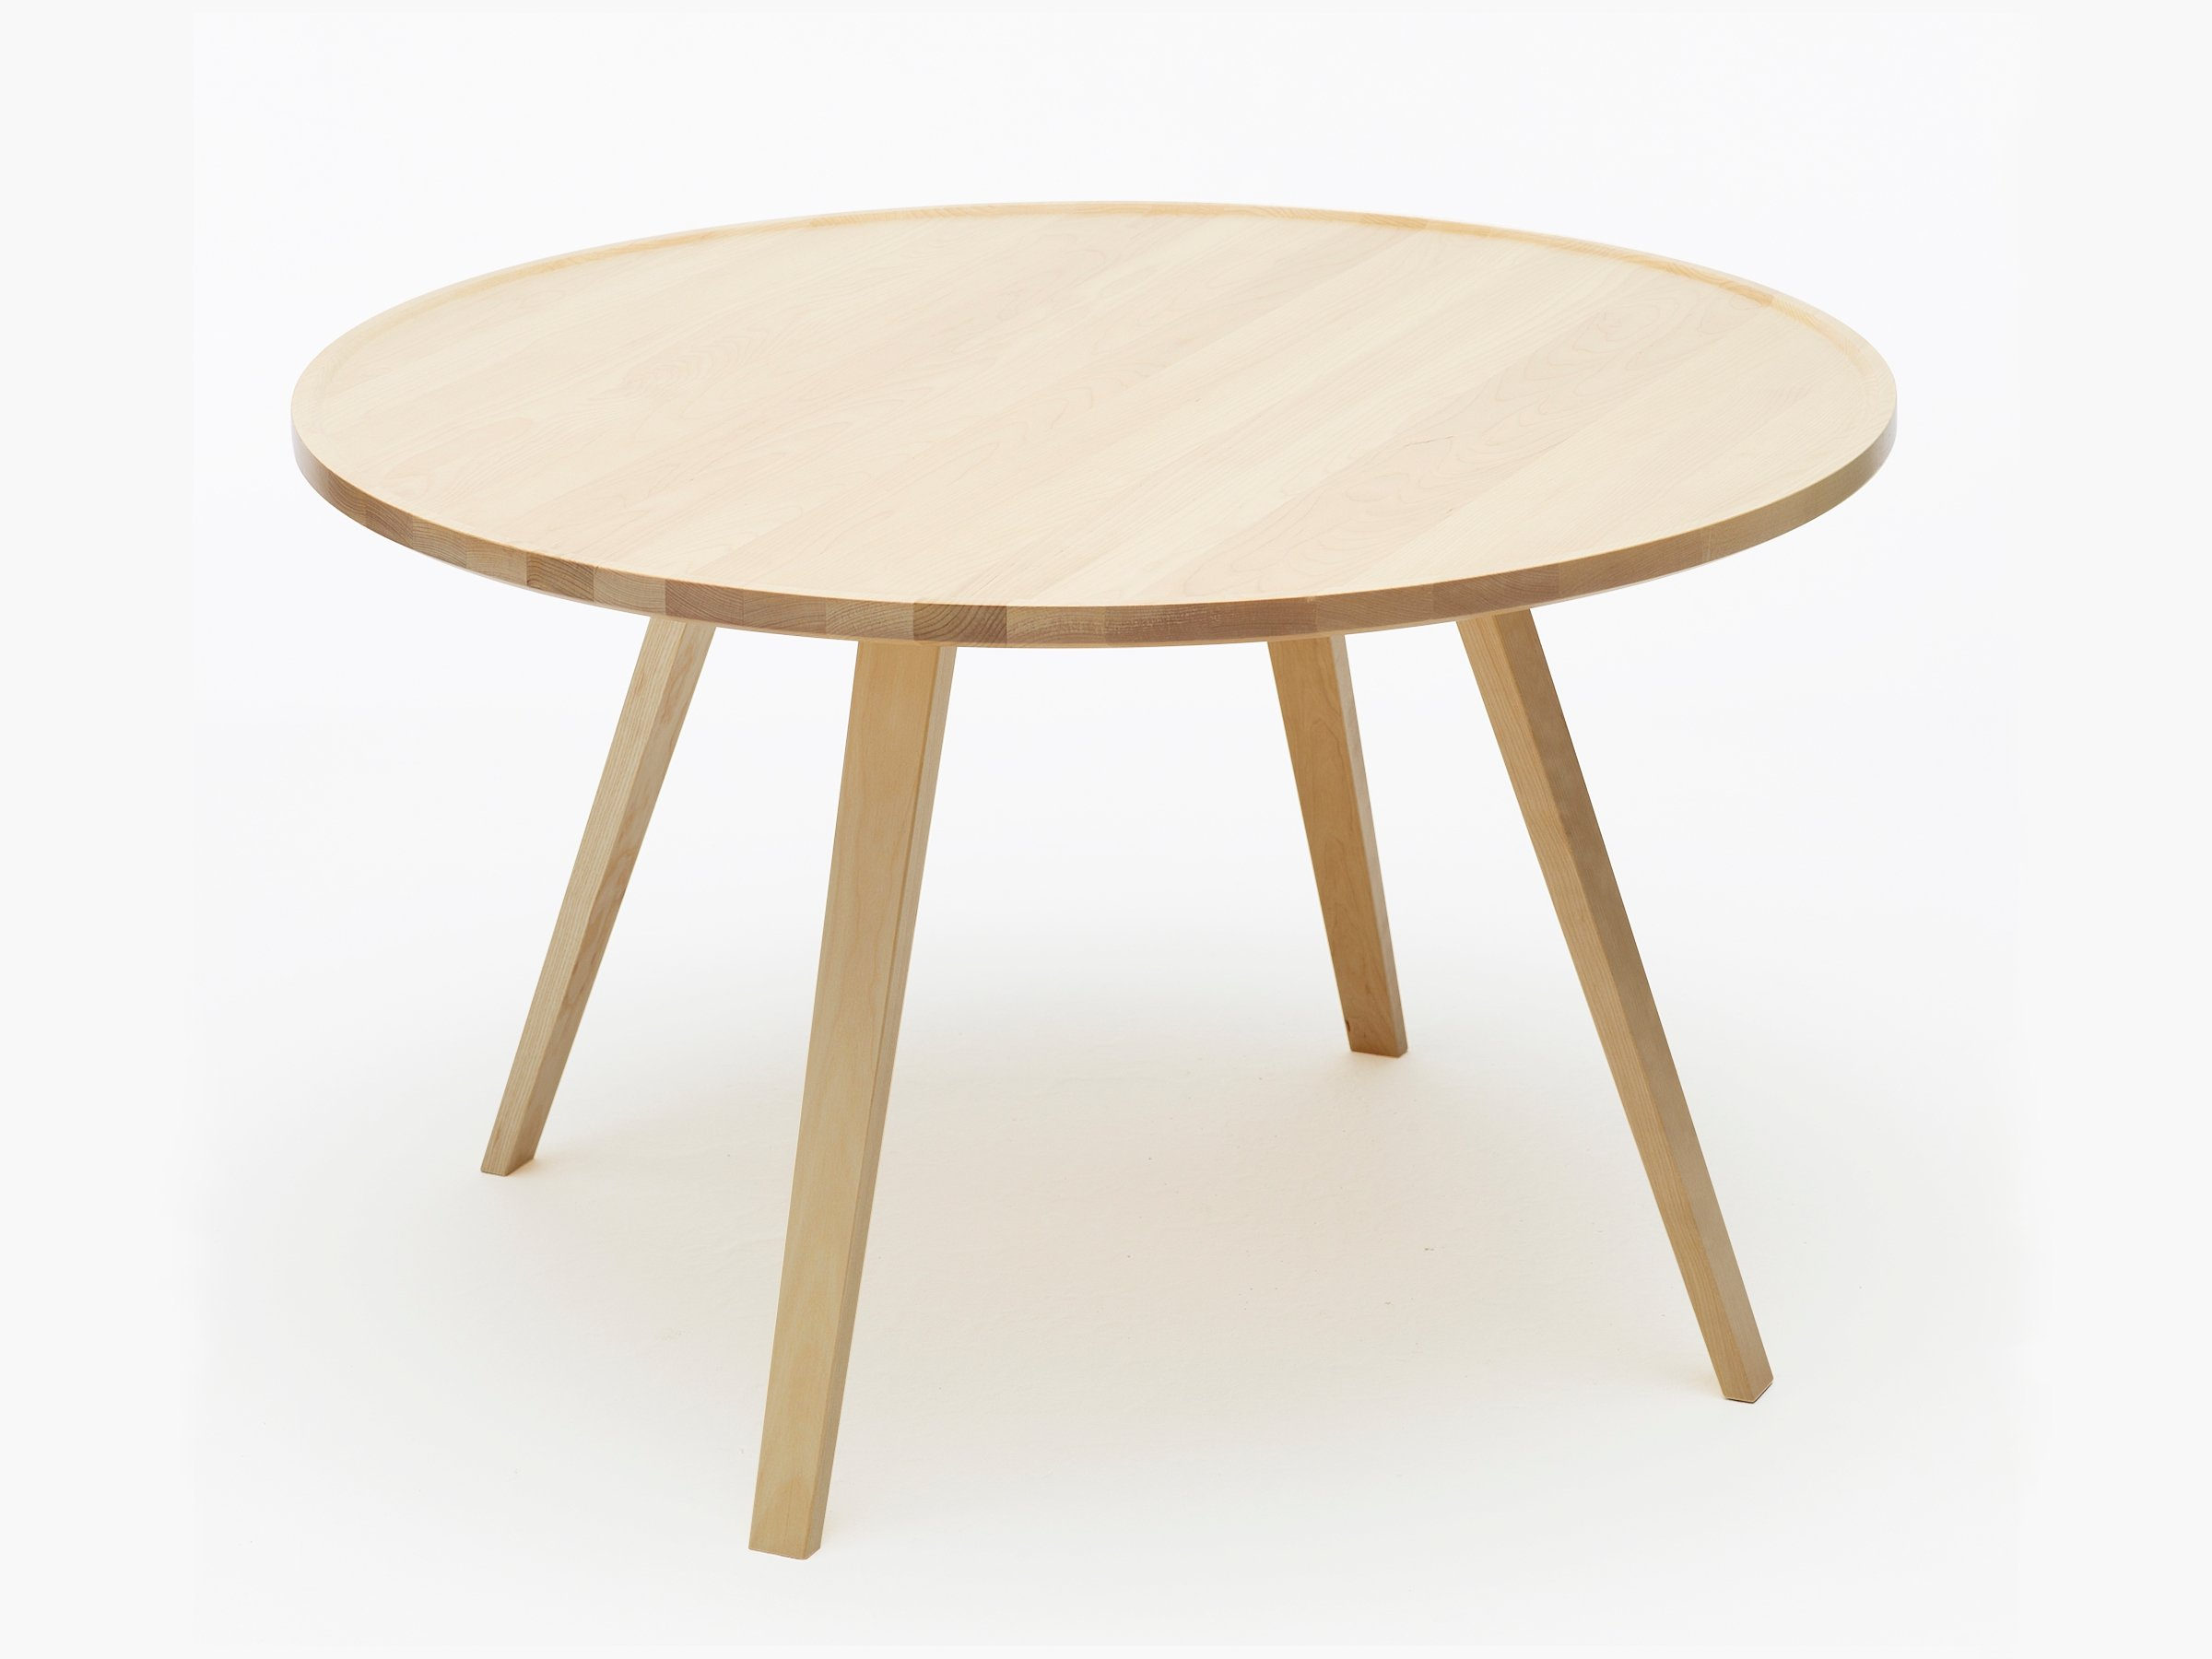 Mill table basse ronde by karl andersson s ner design - Tables basses rondes en bois ...